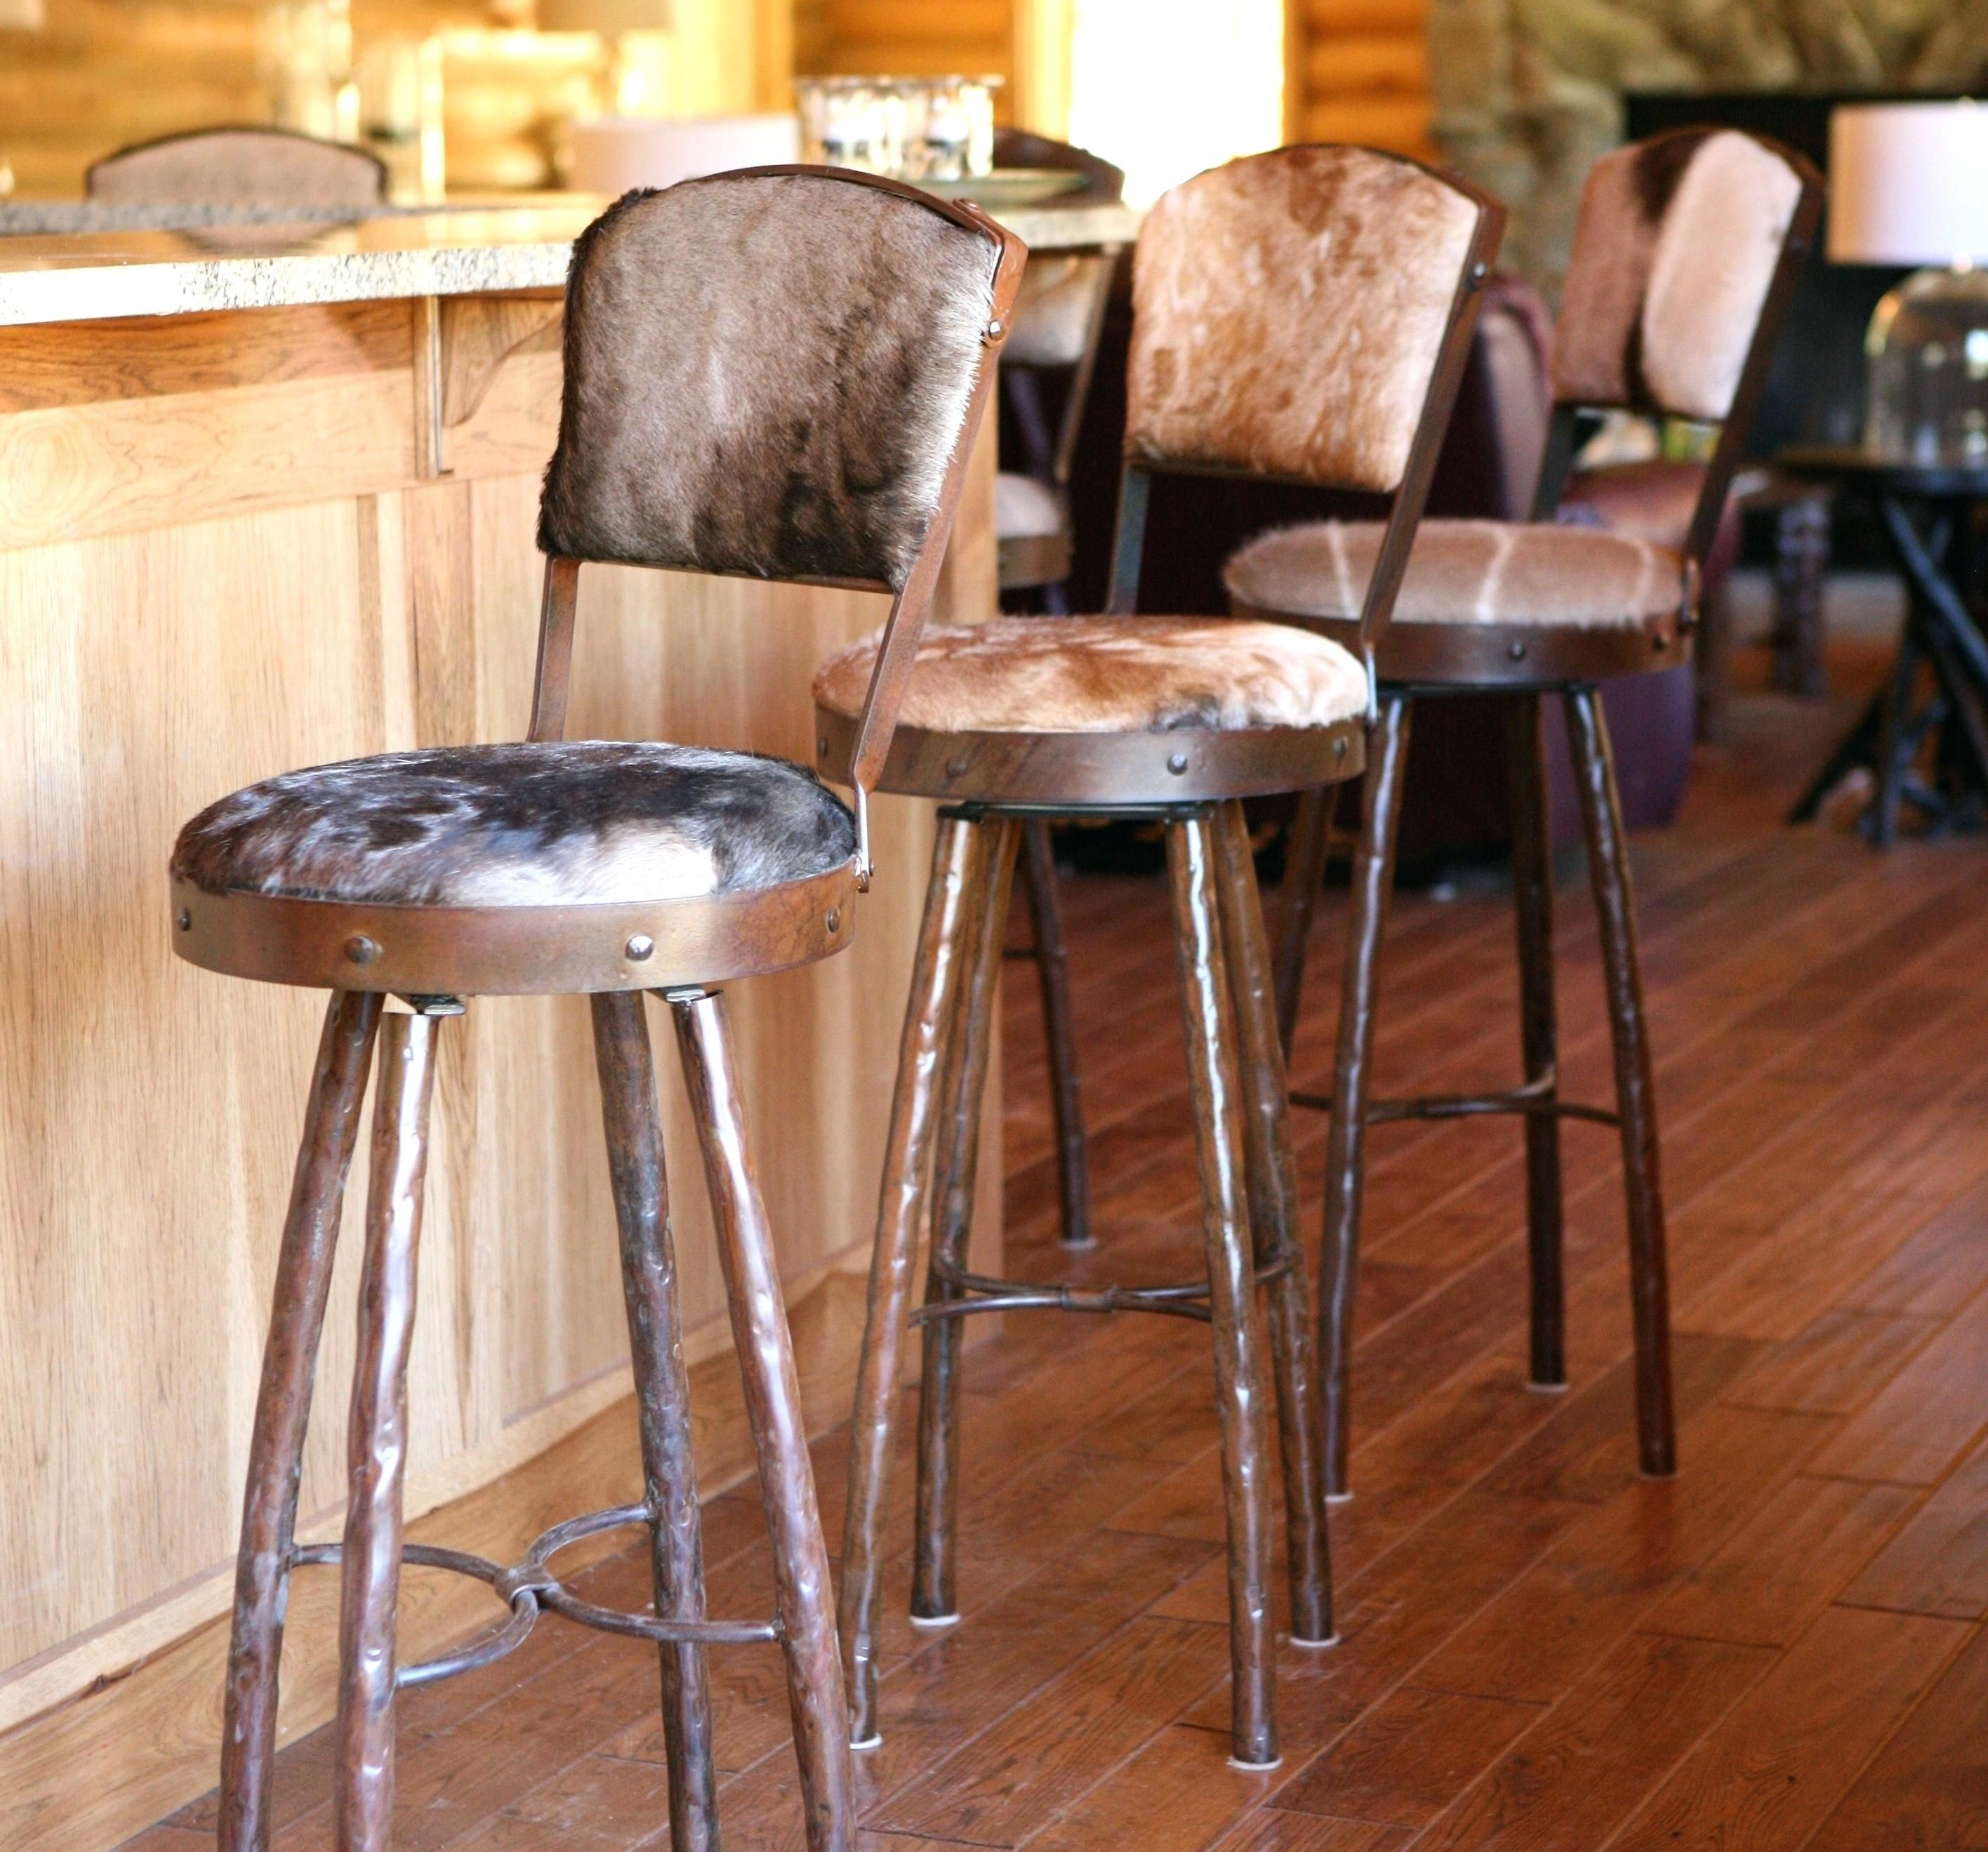 Today, we present you Kelly, the stylish vintage bar chair